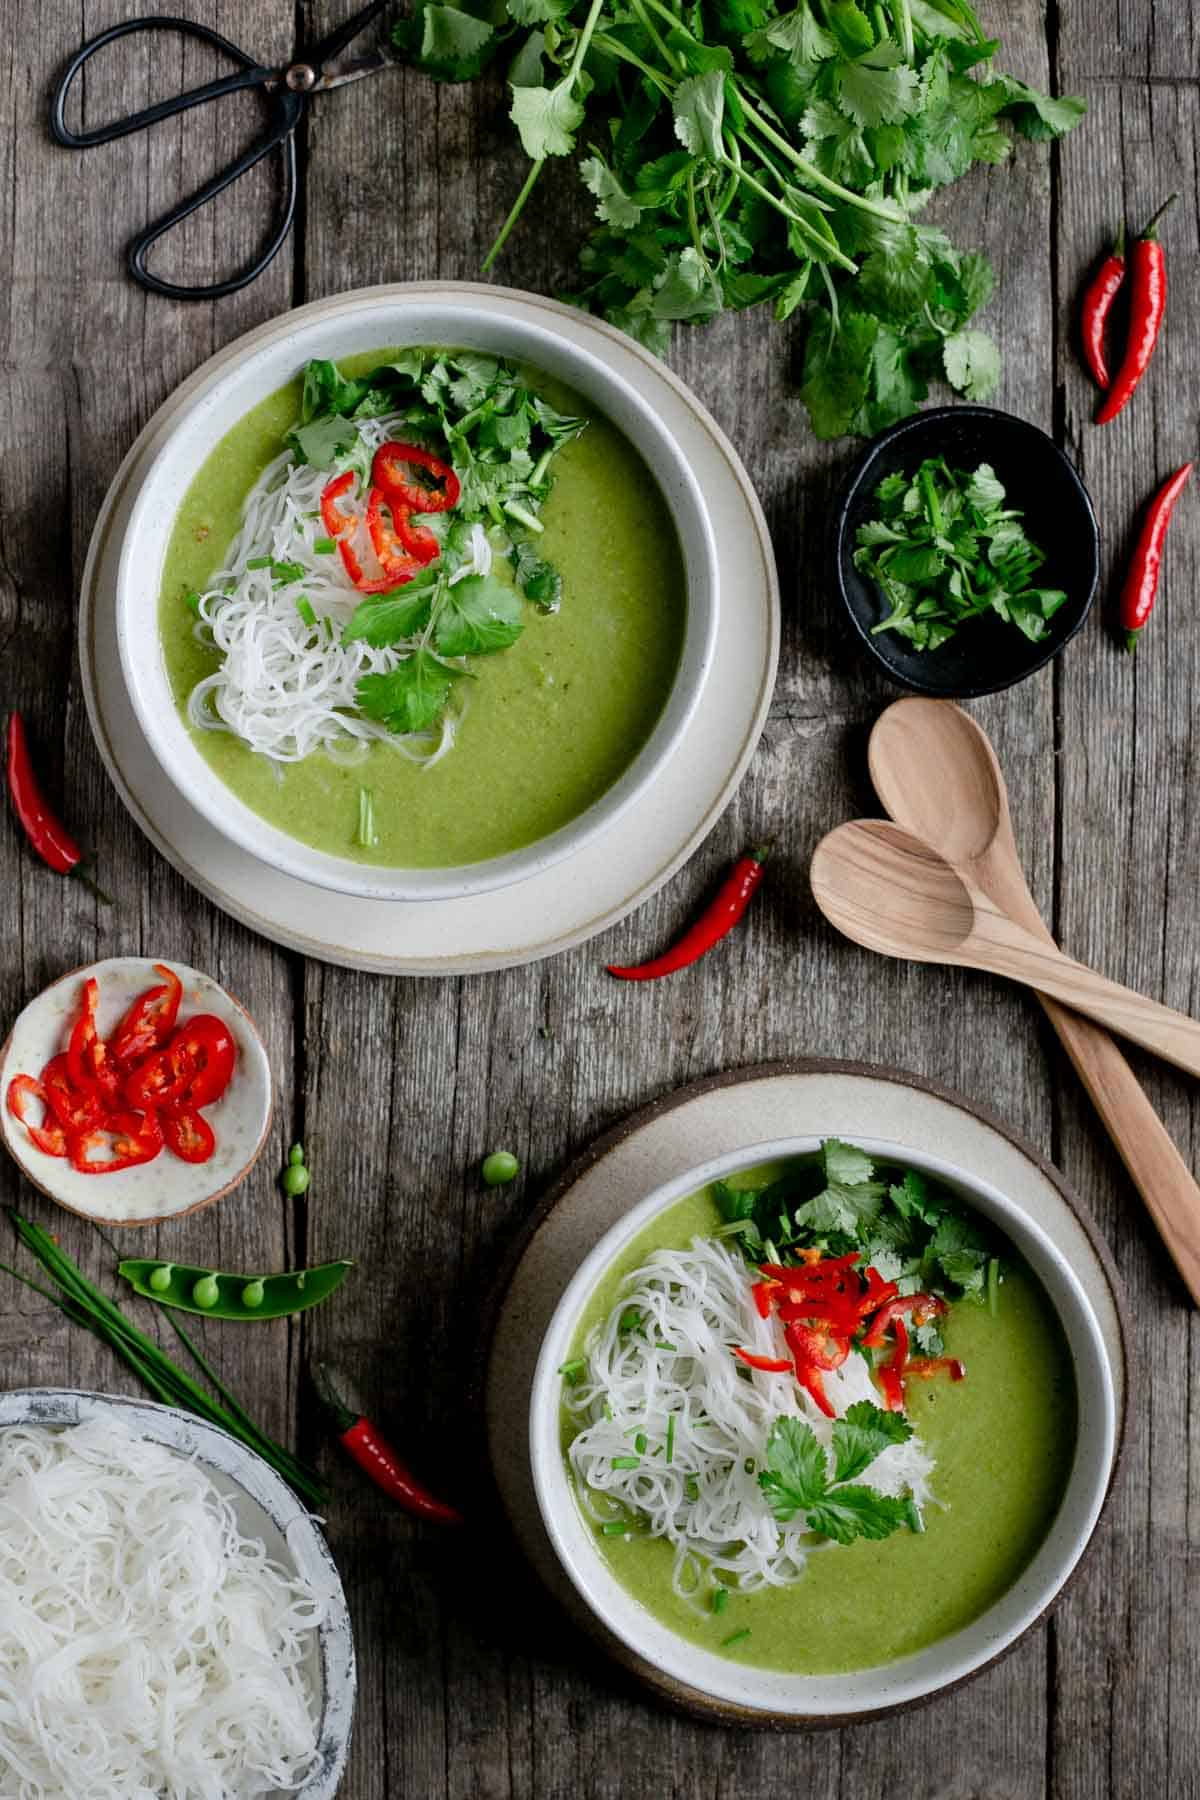 Super easy, full of flavour Thai style pea and apple soup #souprecipe #healthyrecipe | via @annabanana.co